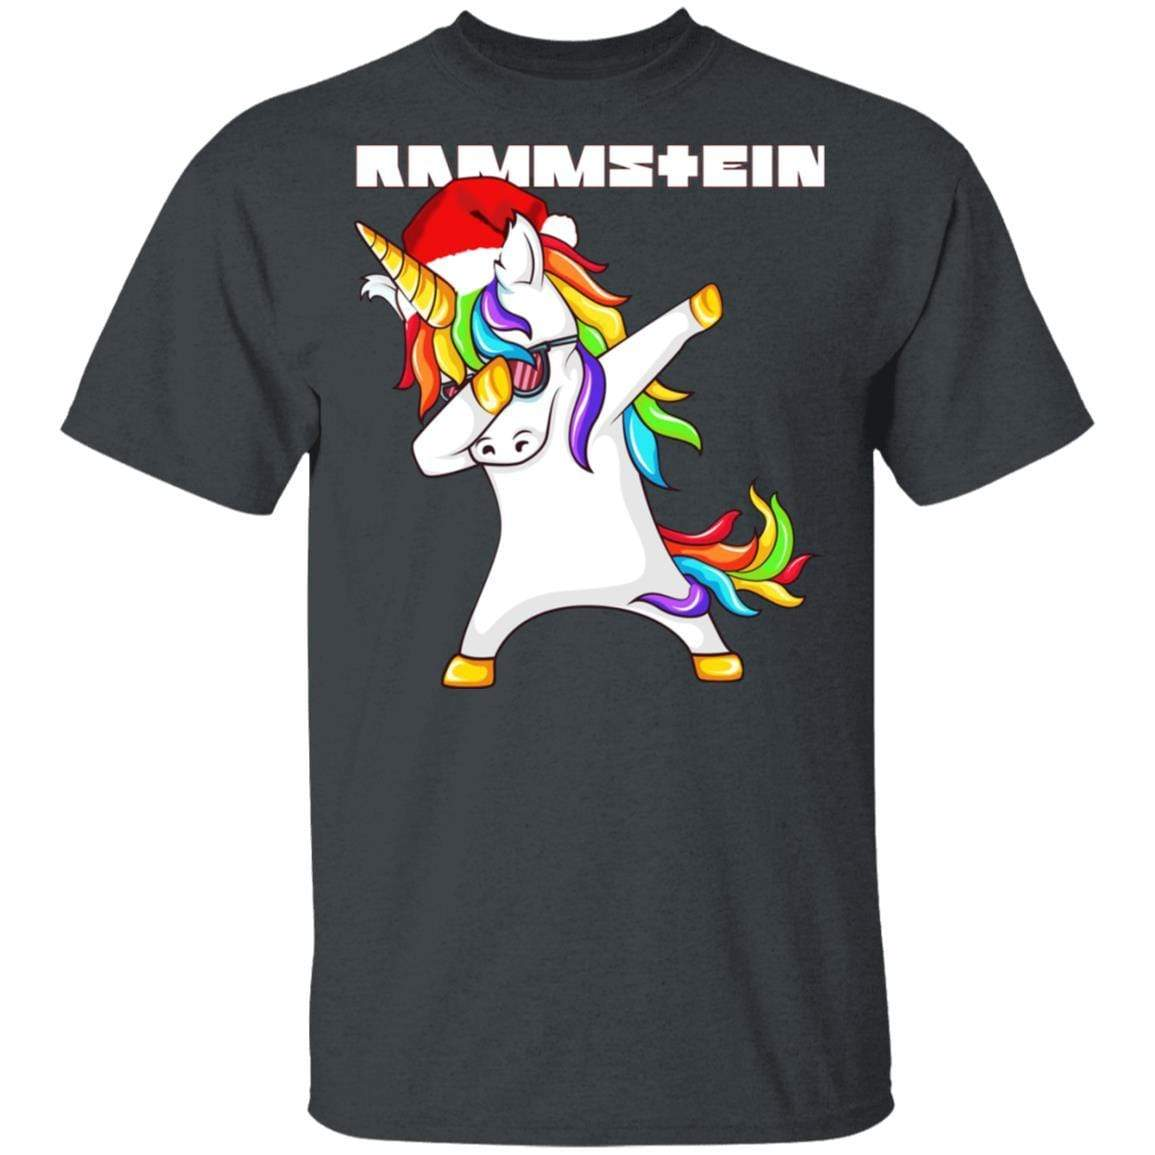 Rammstein Dabbing Unicorn Version T-Shirts, Hoodies 1049-9957-88254696-48192 - Tee Ript